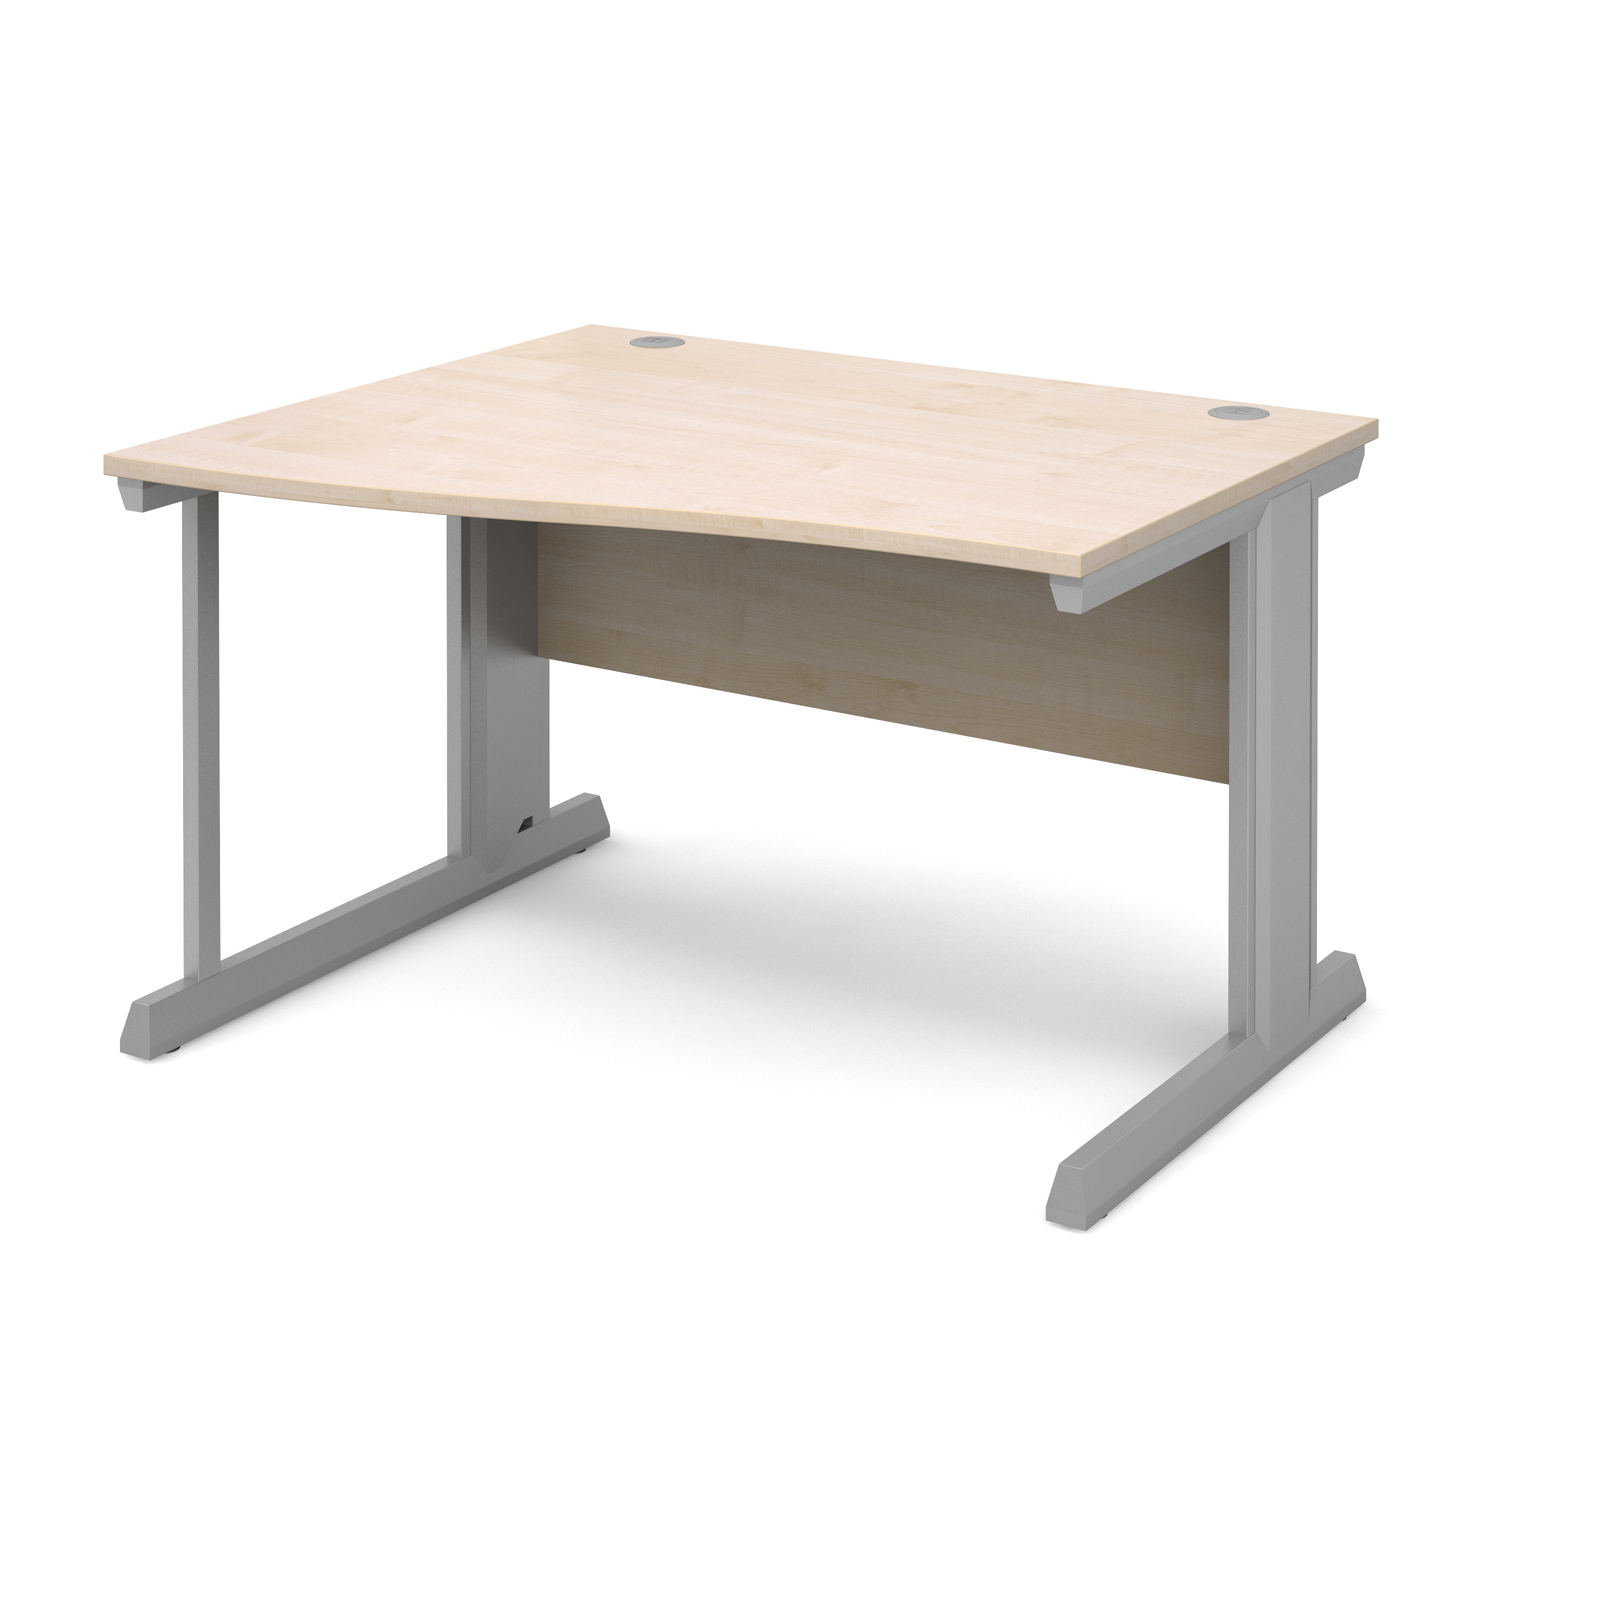 Compare prices for Vivo Left Hand Wave Desk 1200mm - Silver Frame Maple Top